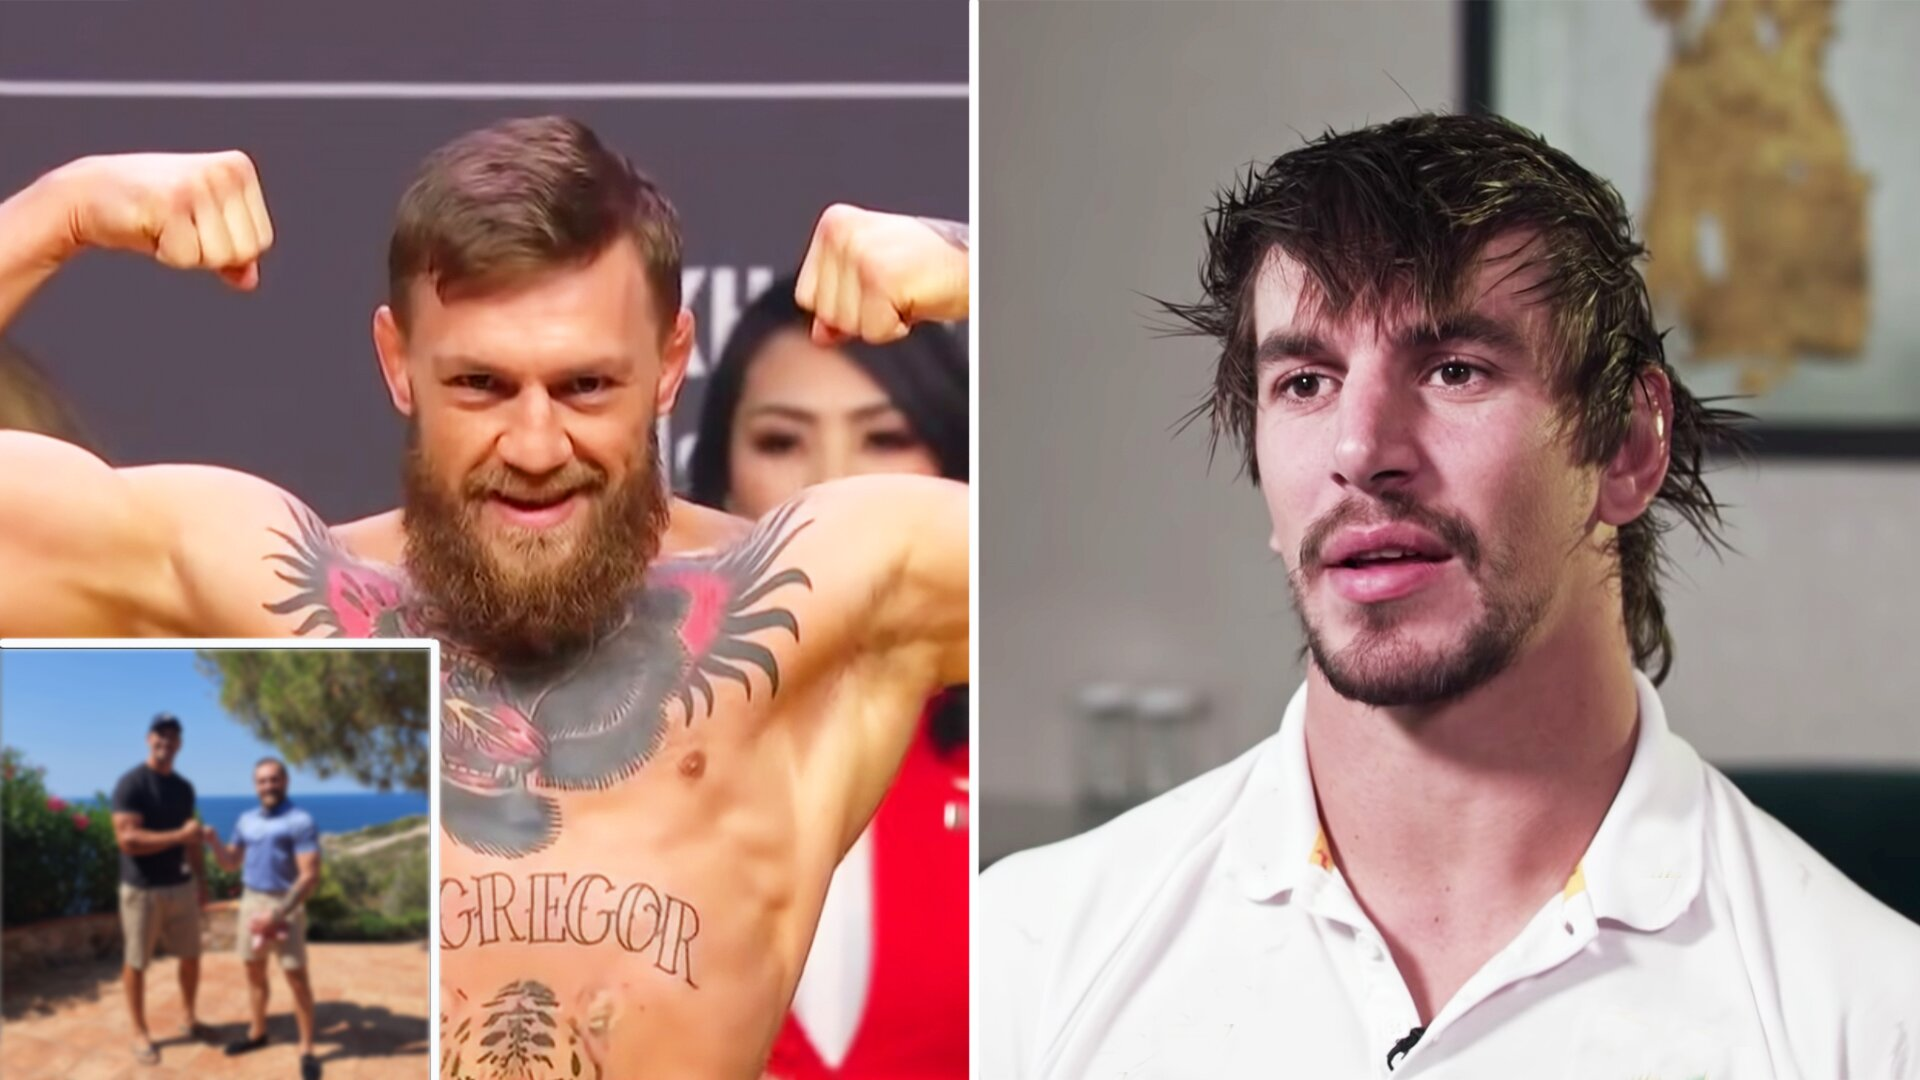 Fans call for 'fight of the century' as picture emerges of Eben Etzebeth and Conor McGregor together